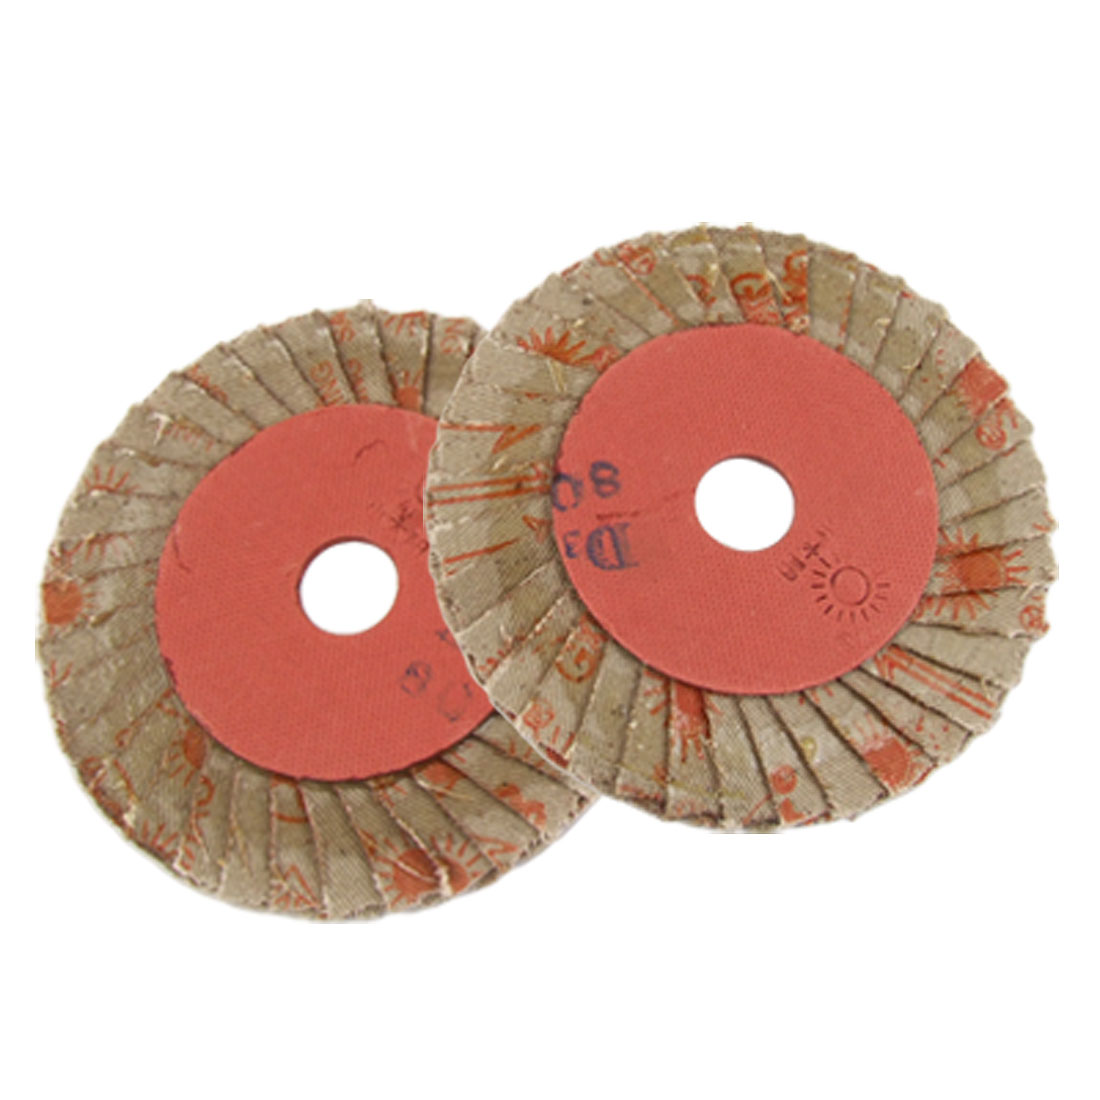 "2 Pcs 80# Grit 4"" Outer Dia Flap Abrasive Wheel Sanding Disc"